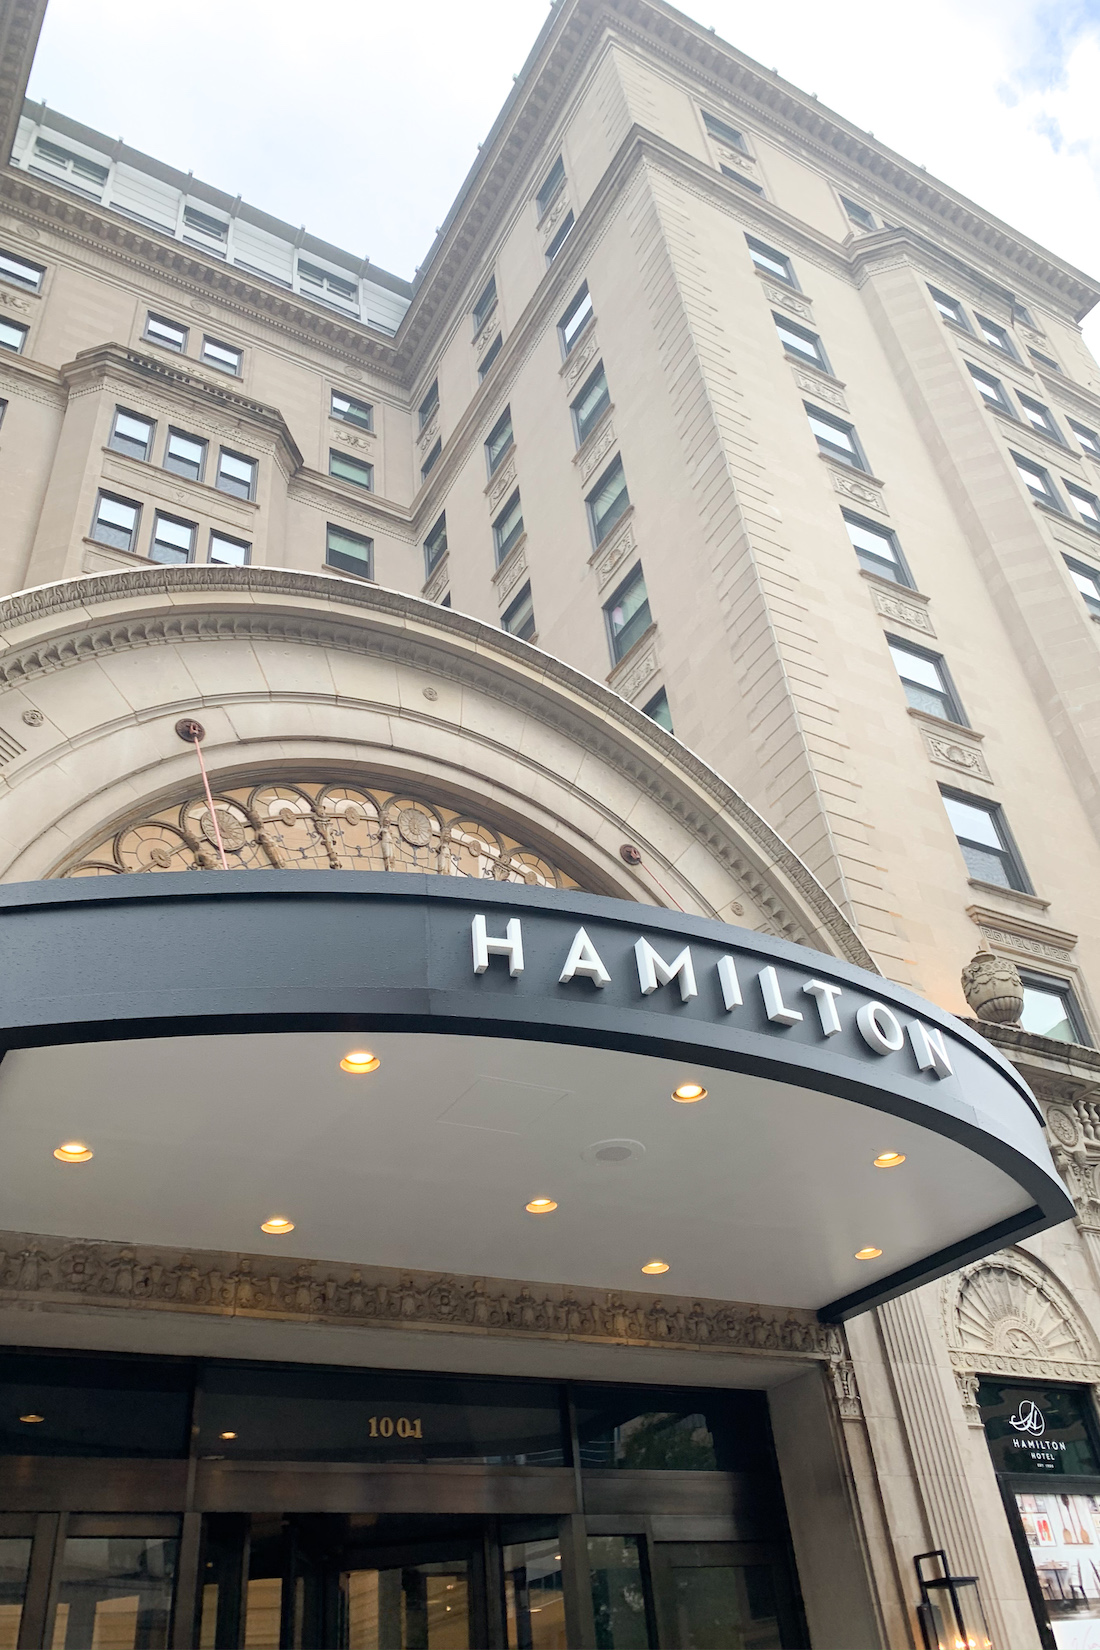 The Hamilton hotel-  Our Trip to DC